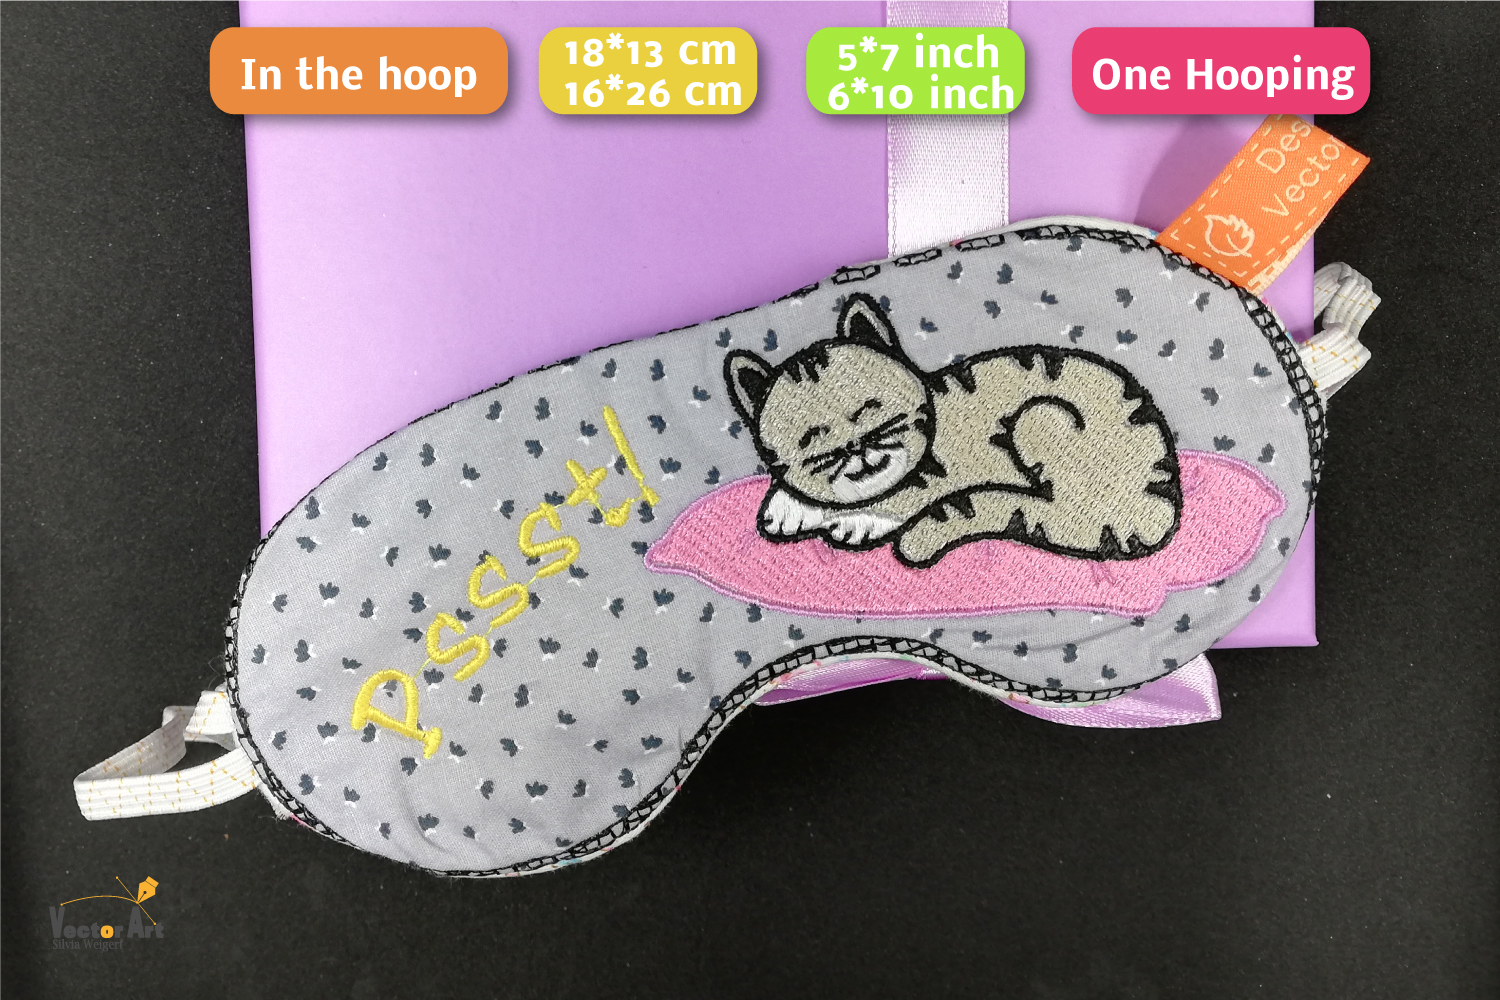 ITH - Sleeping Mask with cute Cat Embroidery - Embroidery example image 2